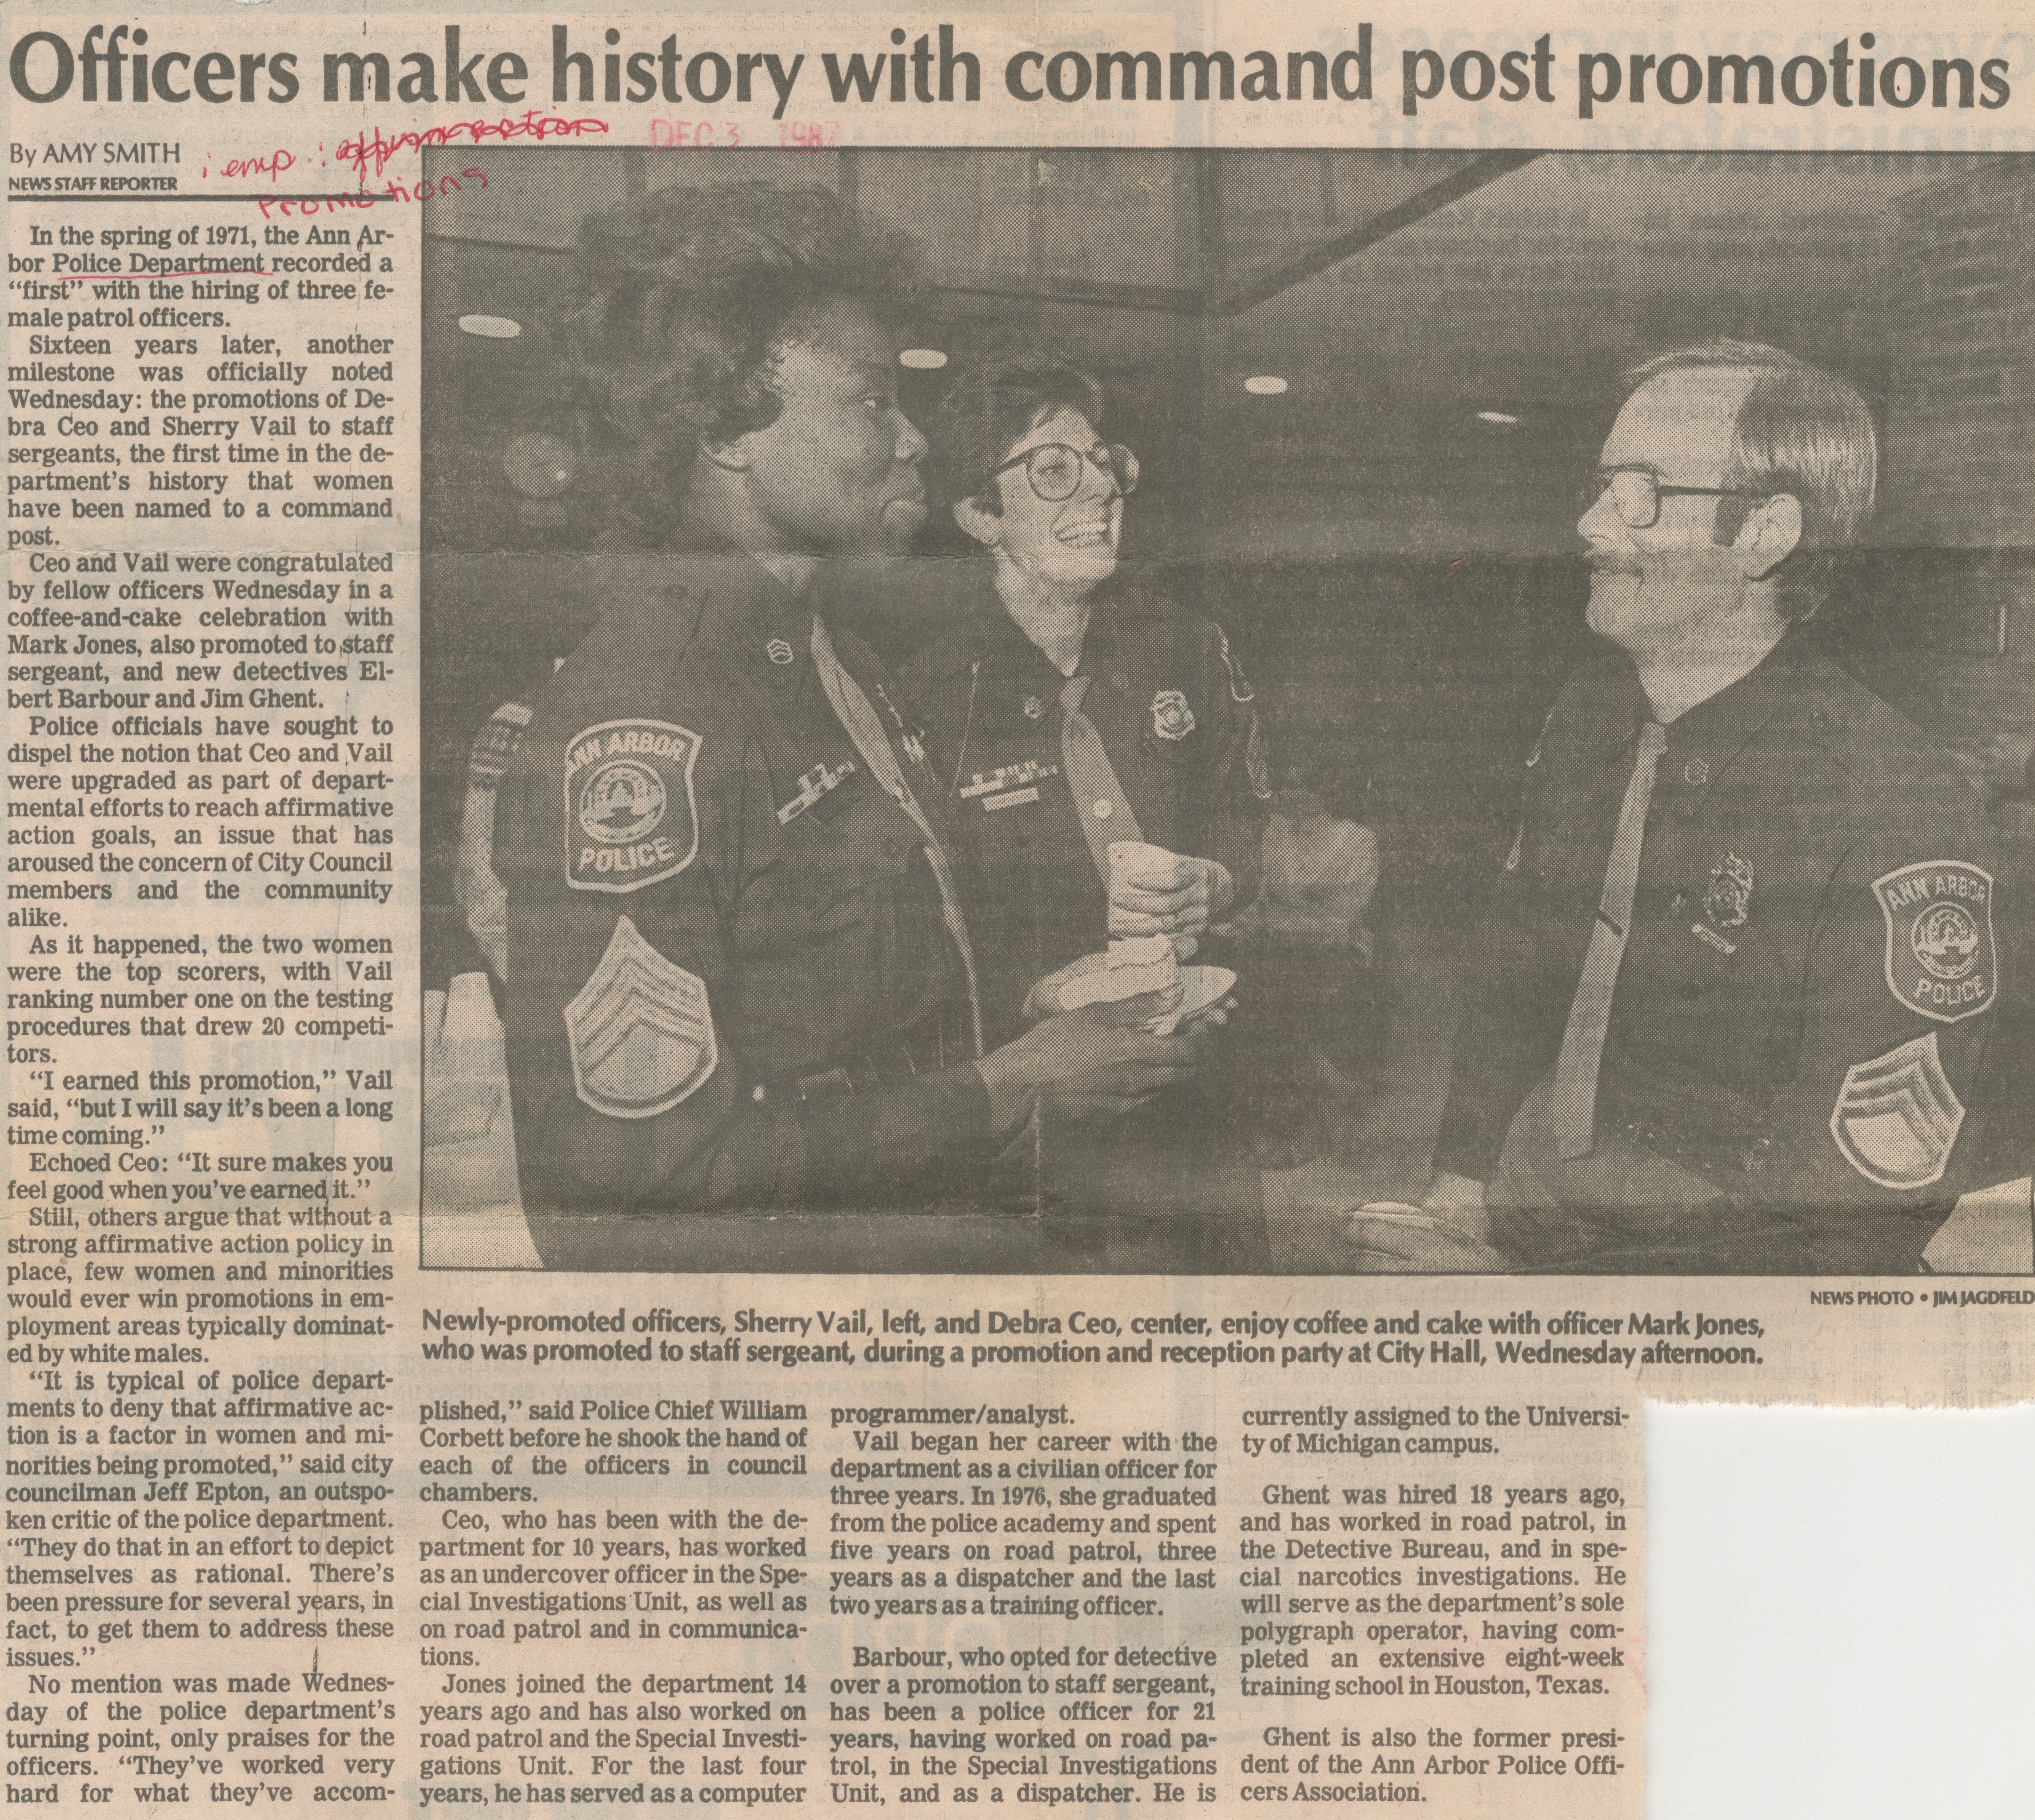 Officers Make History With Command Post Promotions image